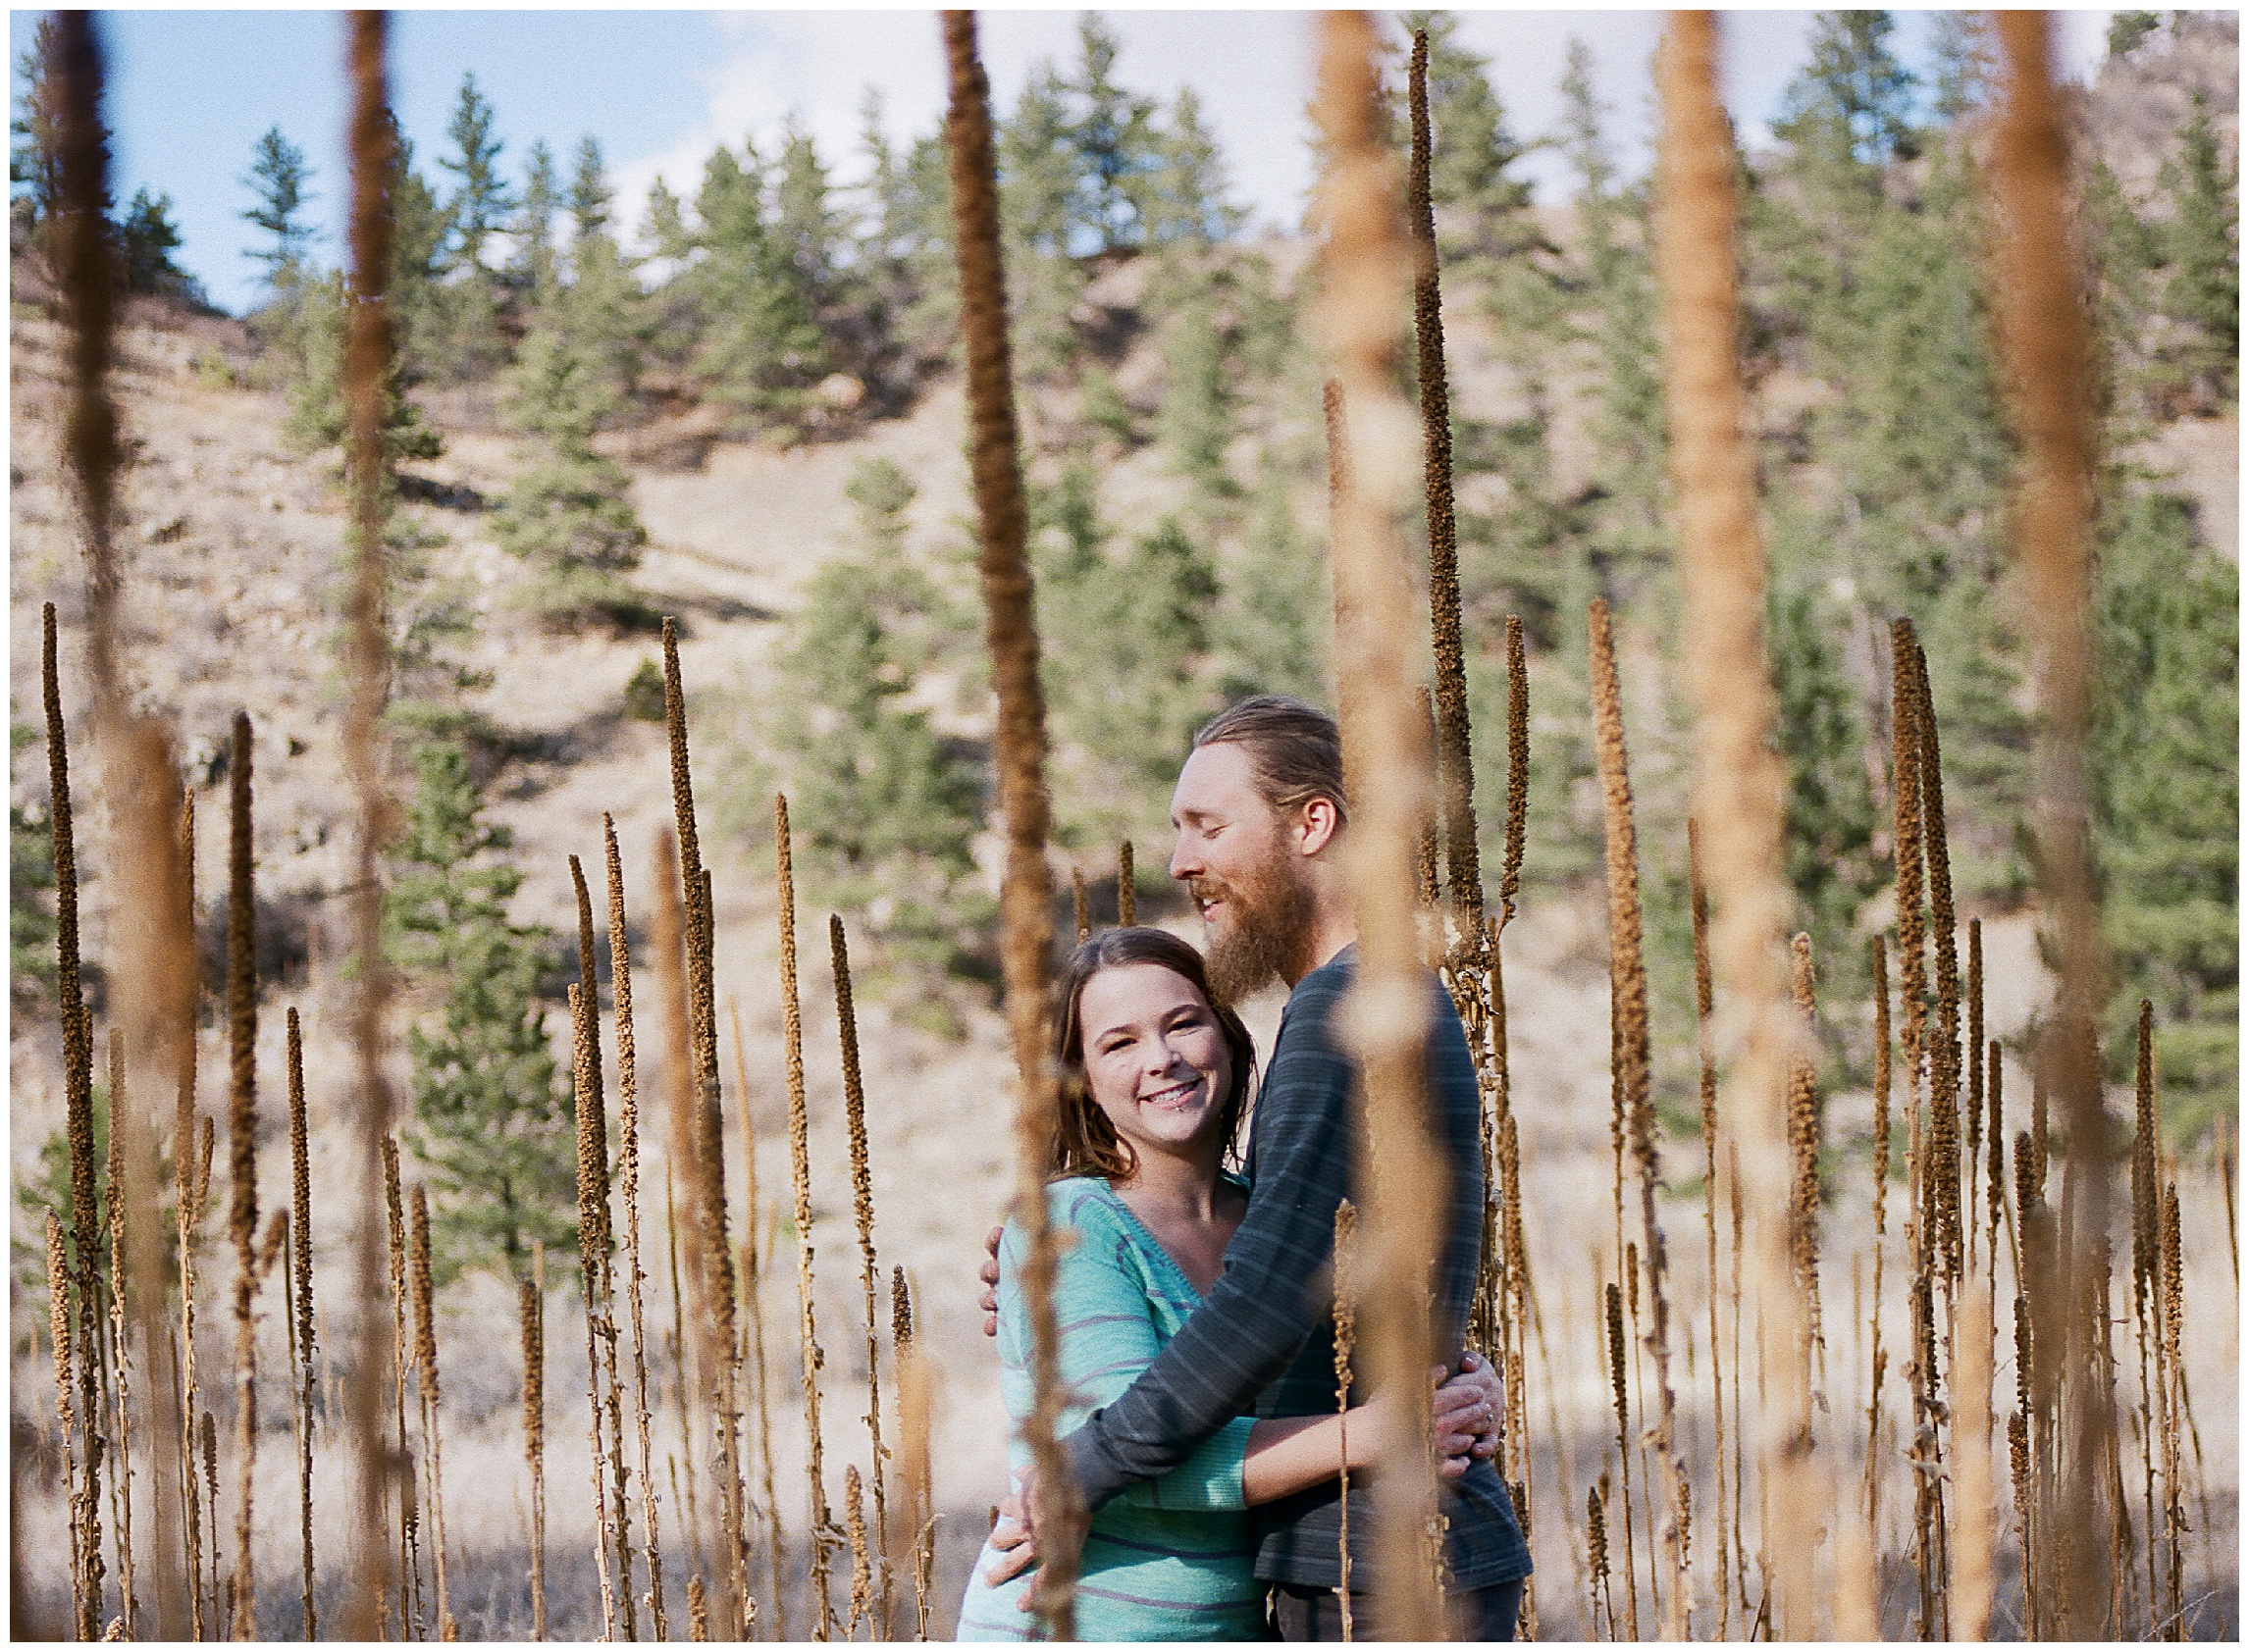 A young couple lovingly holding each other in the bright fall light. Engagement photography by Sonja Salzburg of Sonja K Photography.